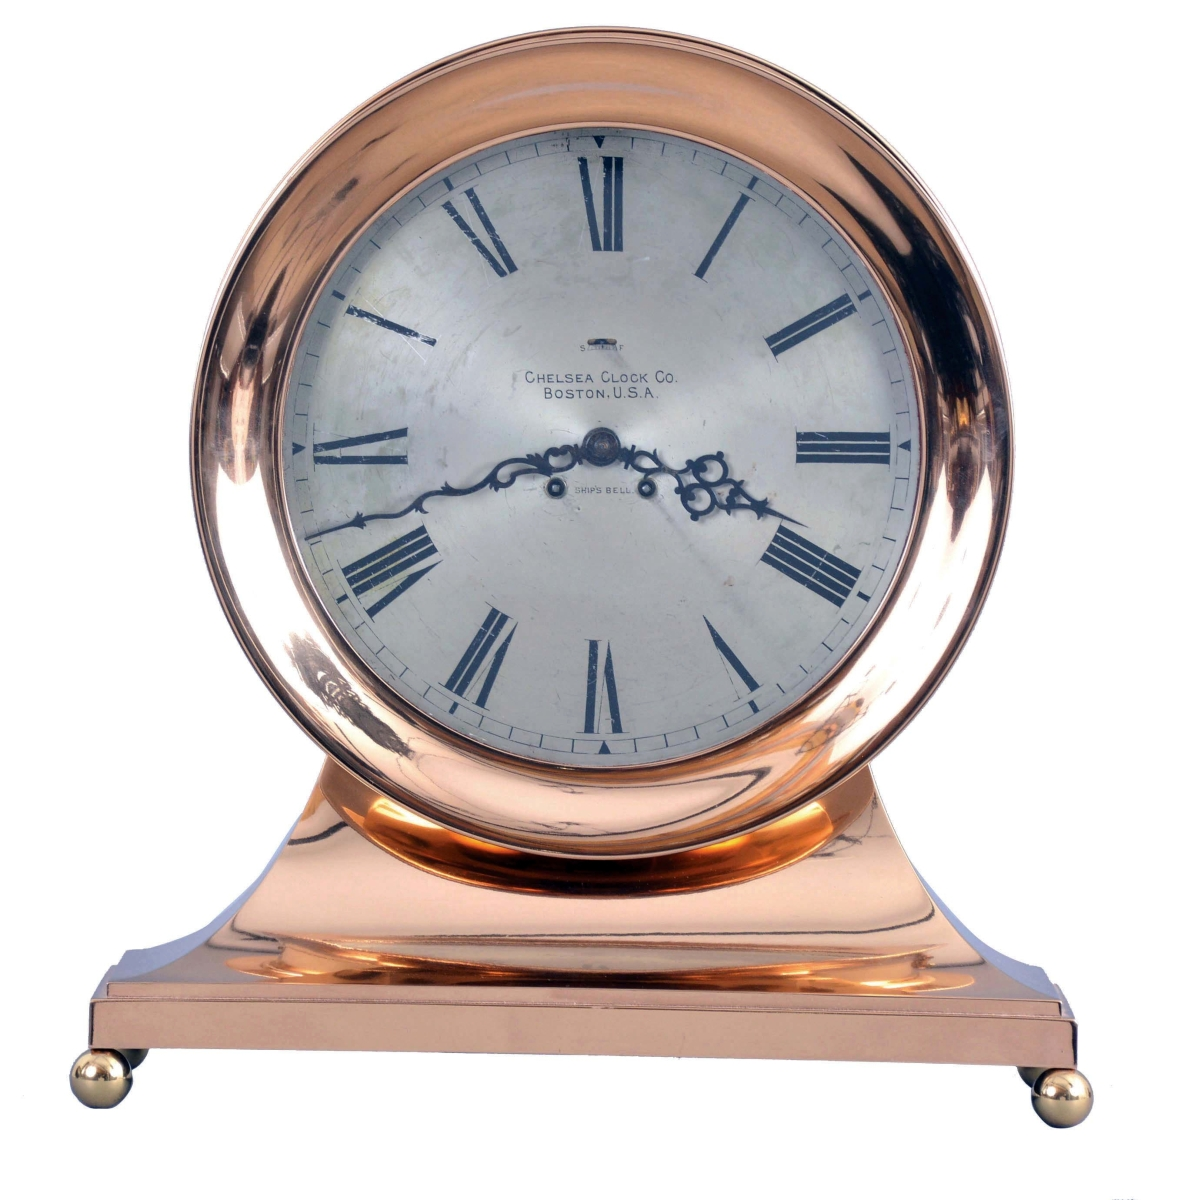 Made by the Chelsea Clock Co., Boston, this base and ball shelf clock had a 12-inch dial and a bronze case. The final price was $12,980, more than twice its estimate.